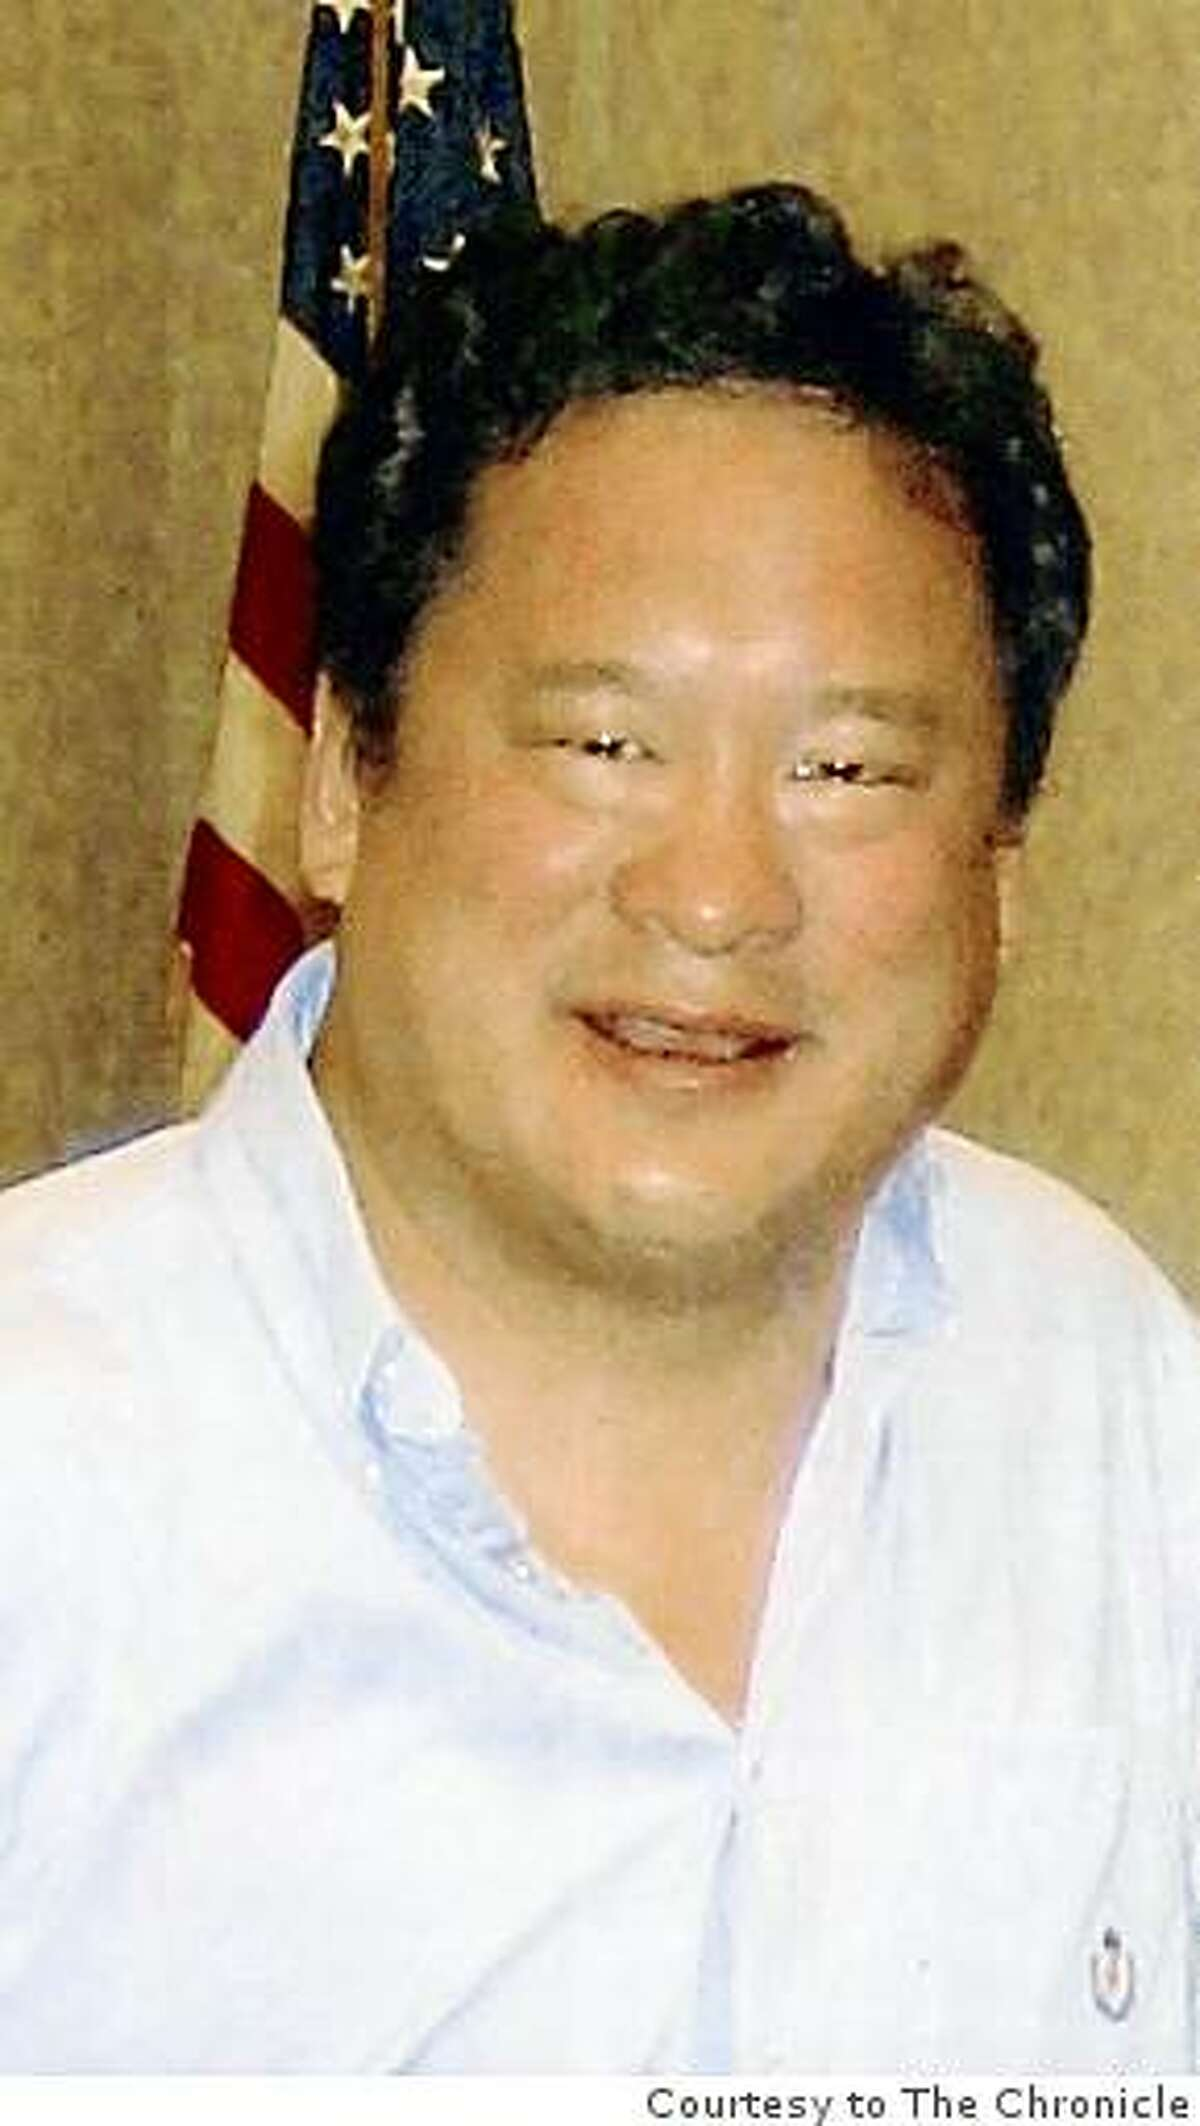 Peter Fong suffered what his attorney contends is a